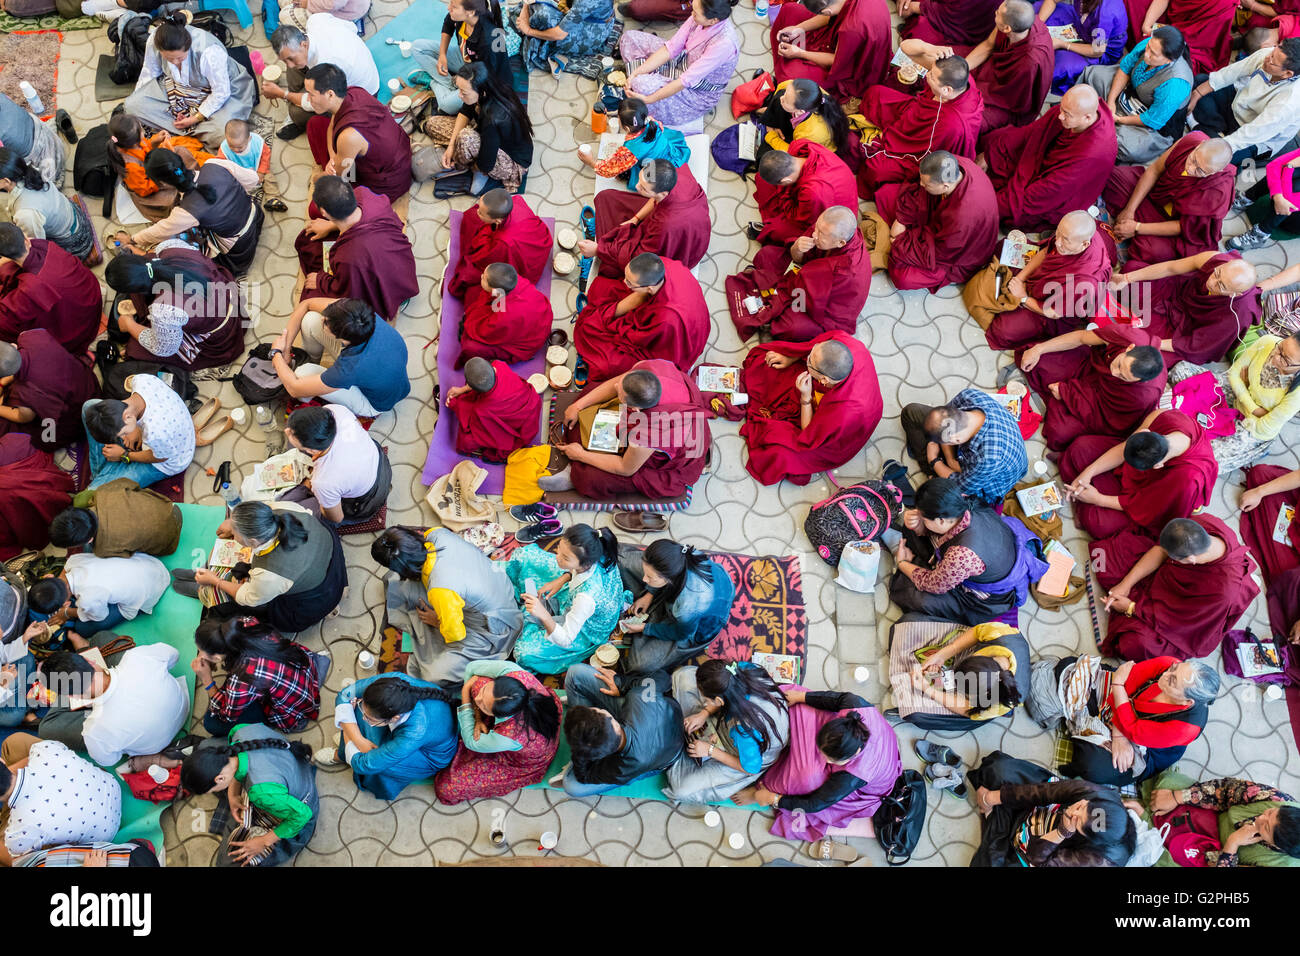 Macleod Ganj, India. 1st of June 2016. Monks, Tibetains and interantional followers fill the Tsuglagkhang temple - Stock Image